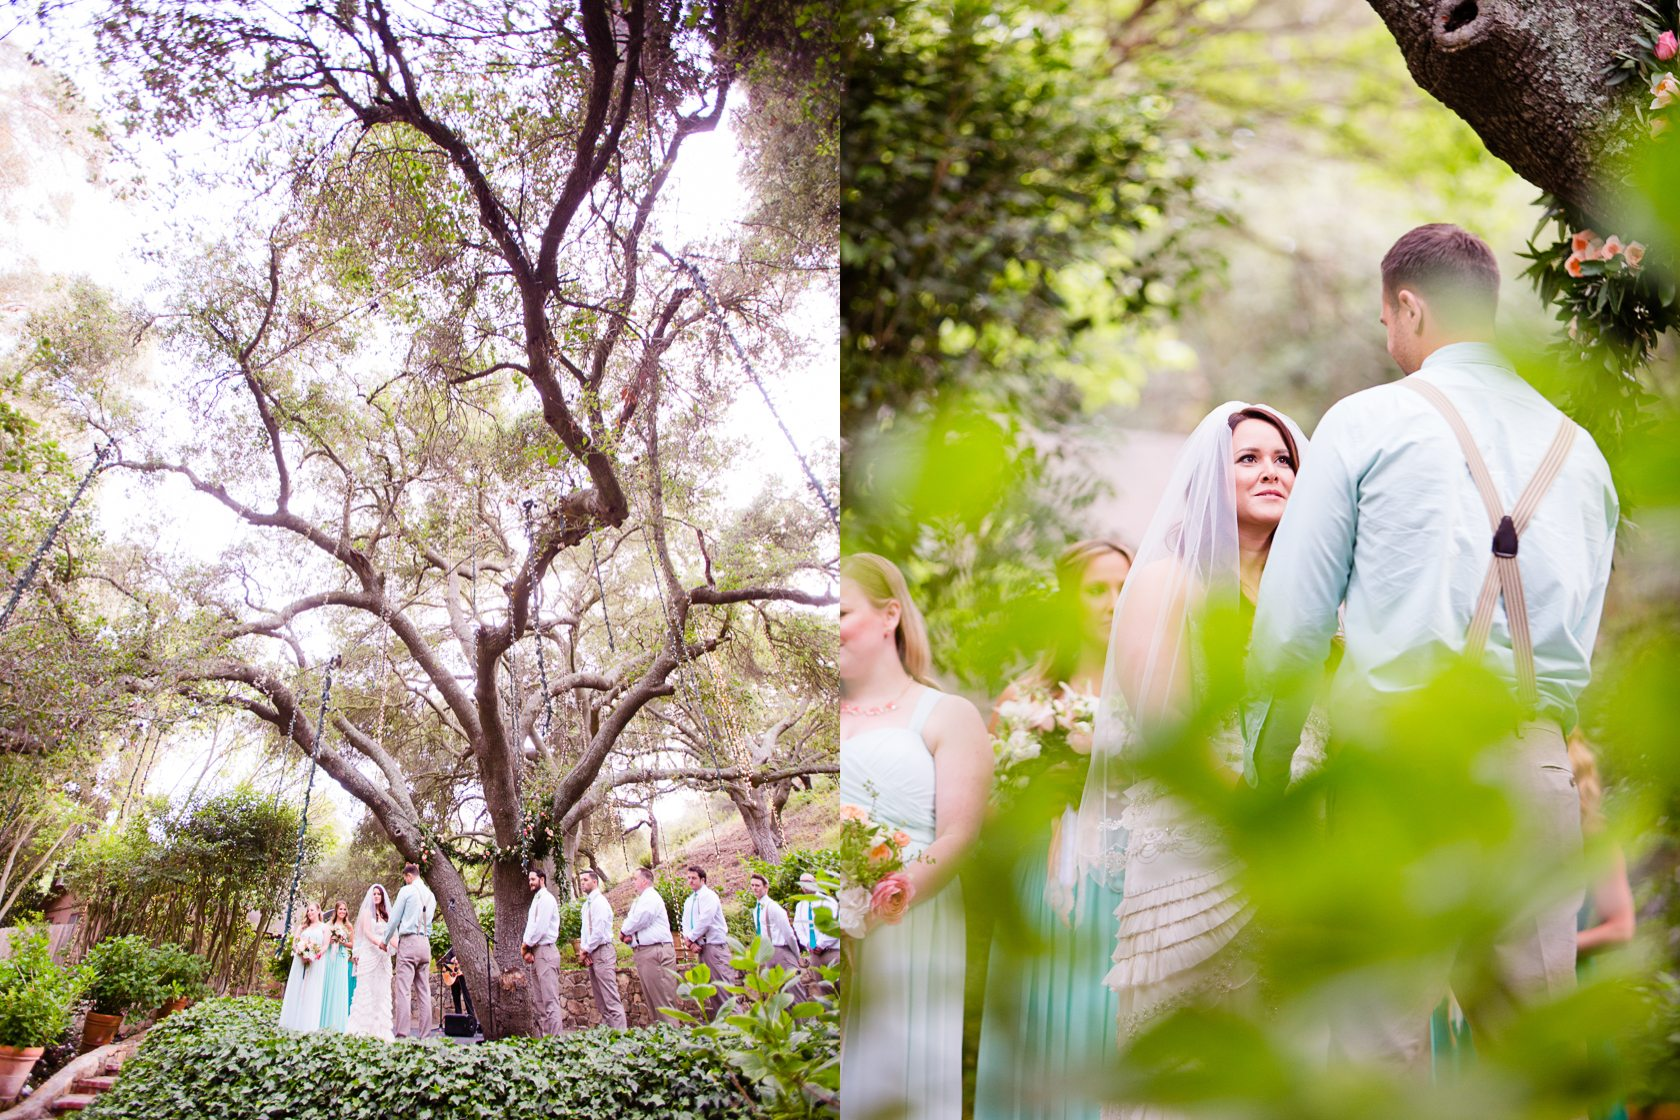 The_Printed_Palette_Wedding_at_Calamigos_Ranch_058.jpg